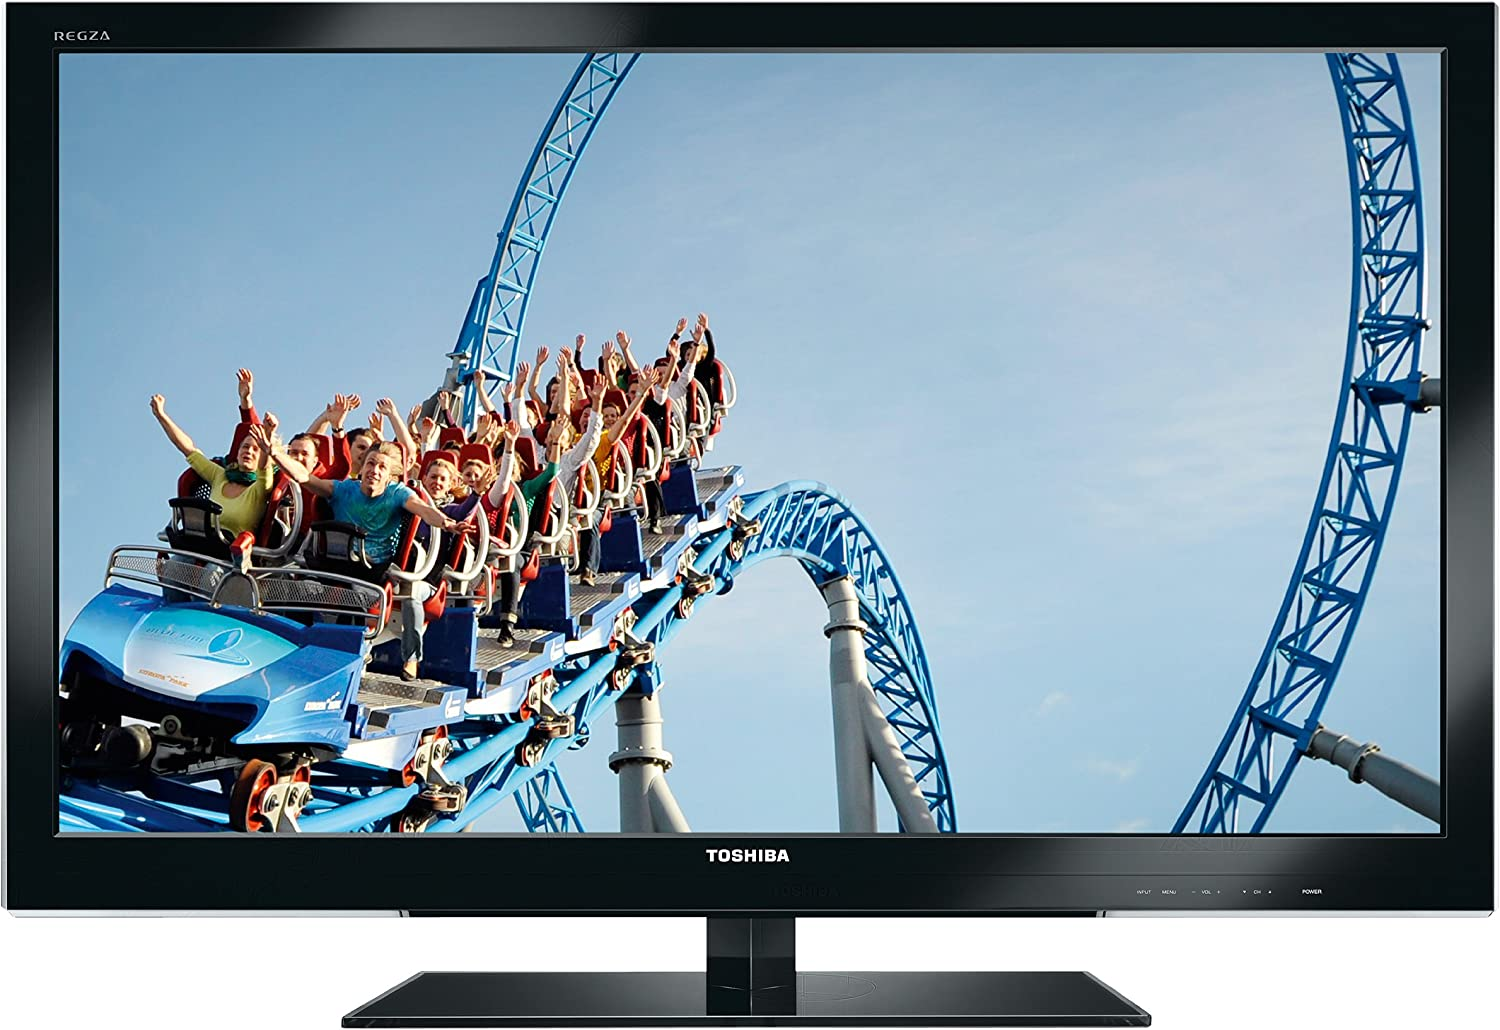 Toshiba 47 VL 863 G - Televisor LED Full HD 47 pulgadas (Internet): Amazon.es: Electrónica